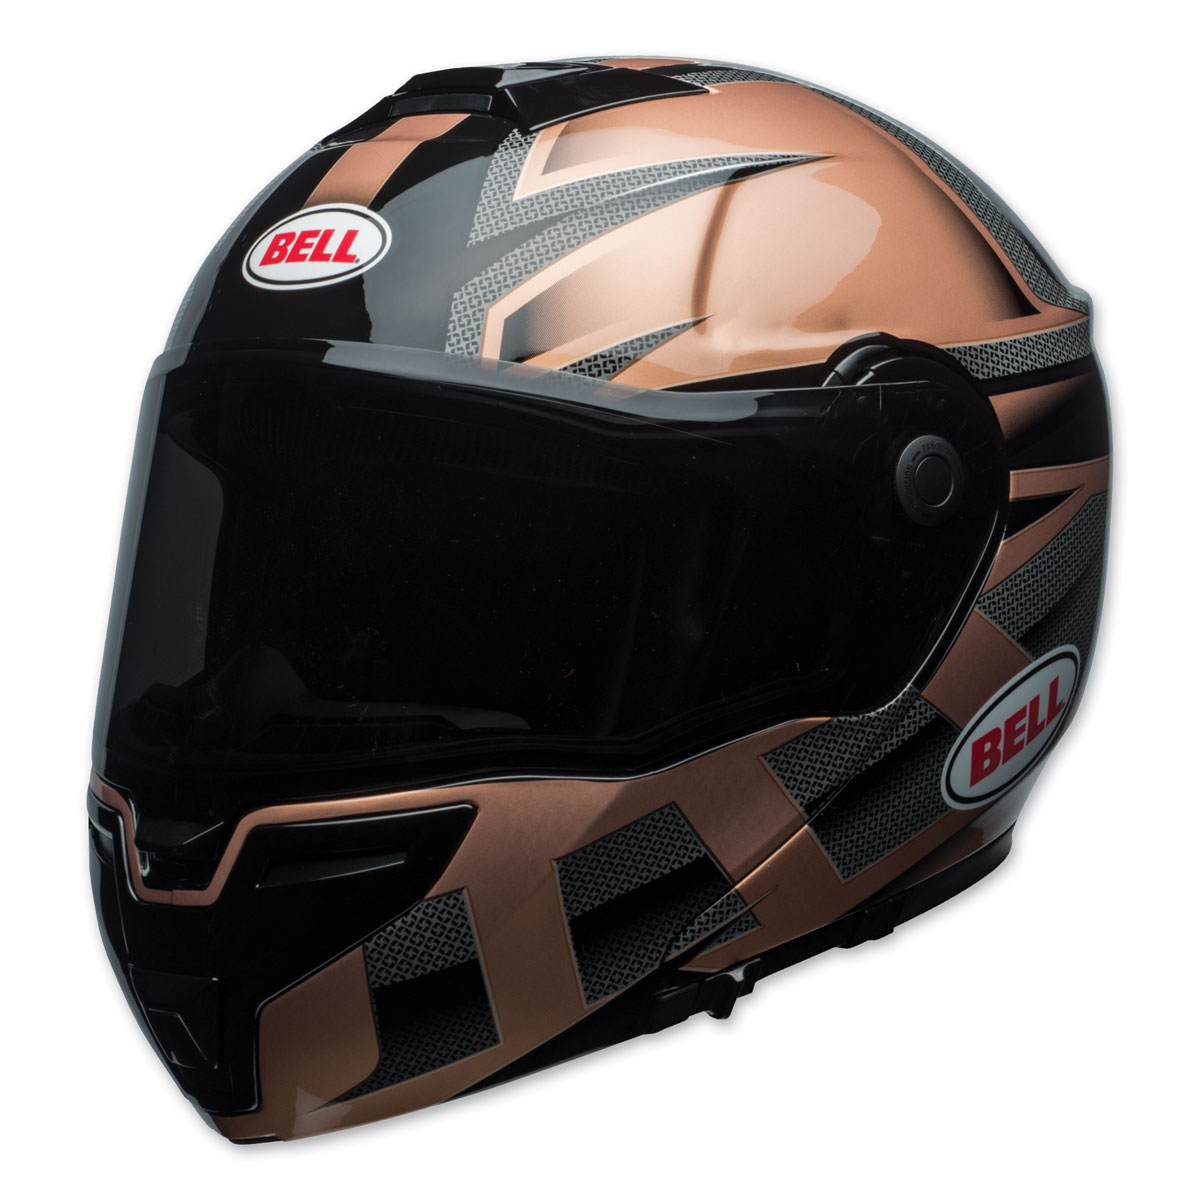 Bell SRT Predator Gloss Copper/Black Modular Helmet